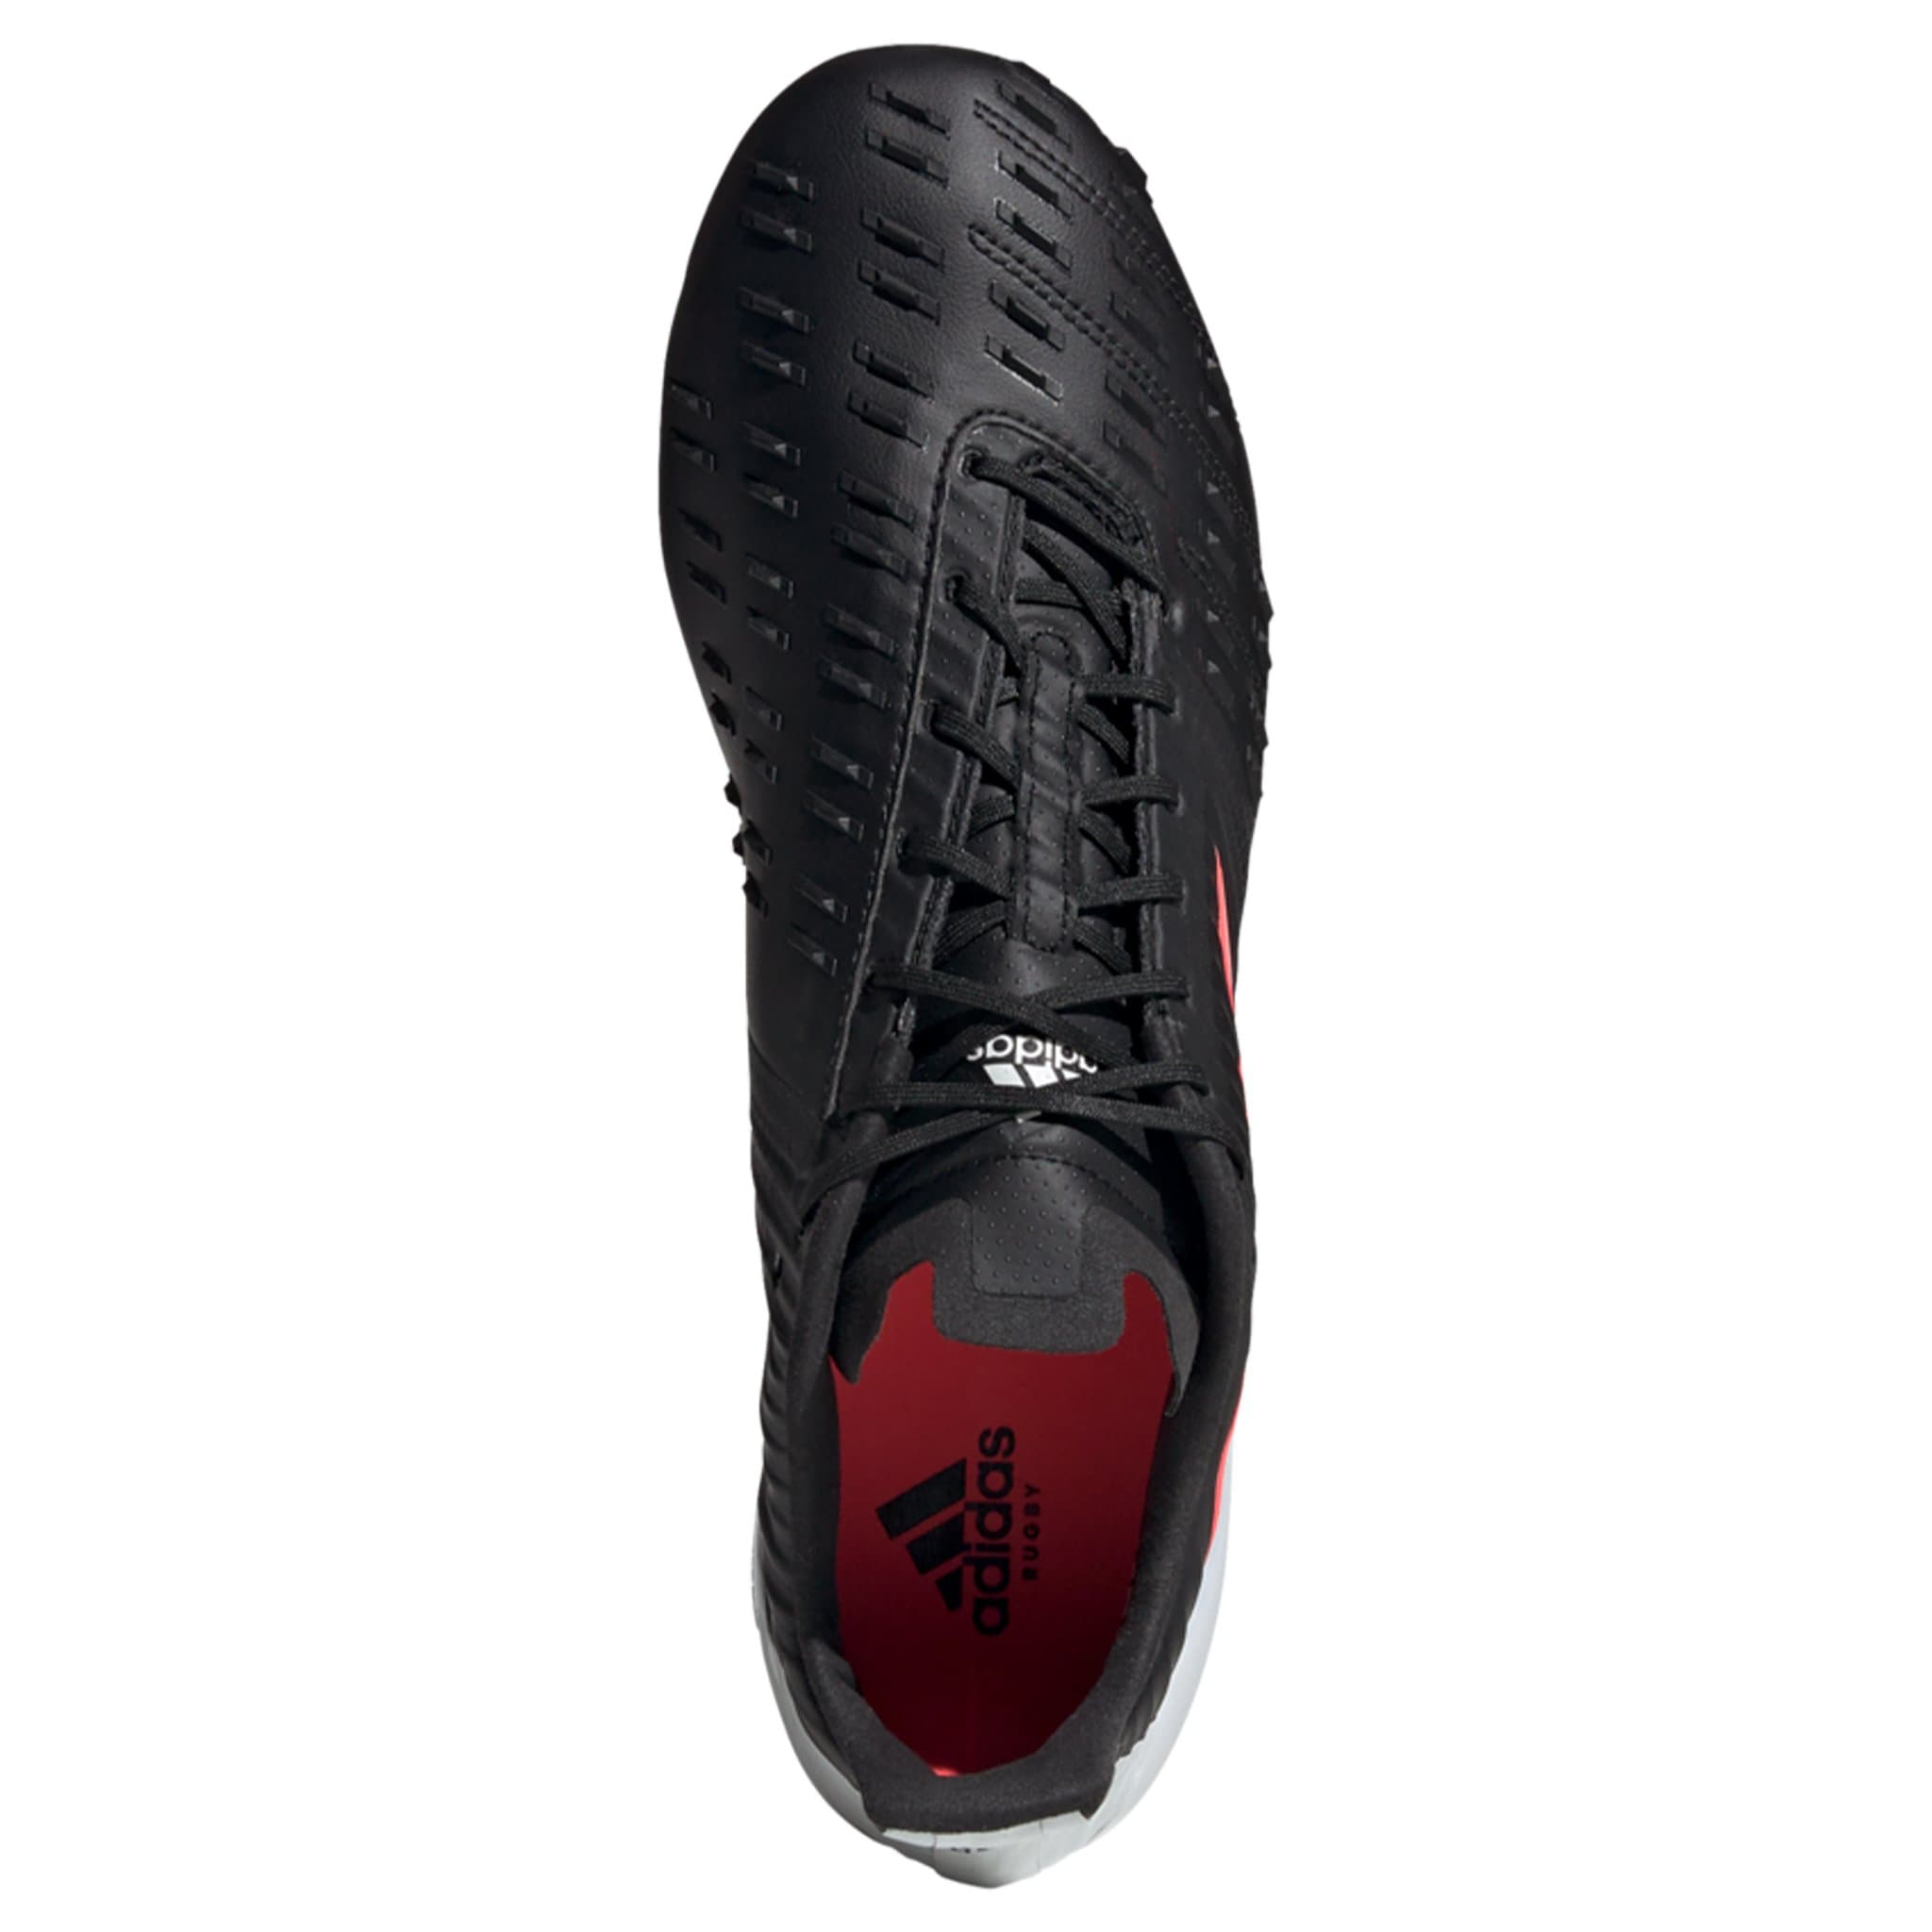 Overhead View Solid Black Adidas Rugby Boot with Pink Stripes